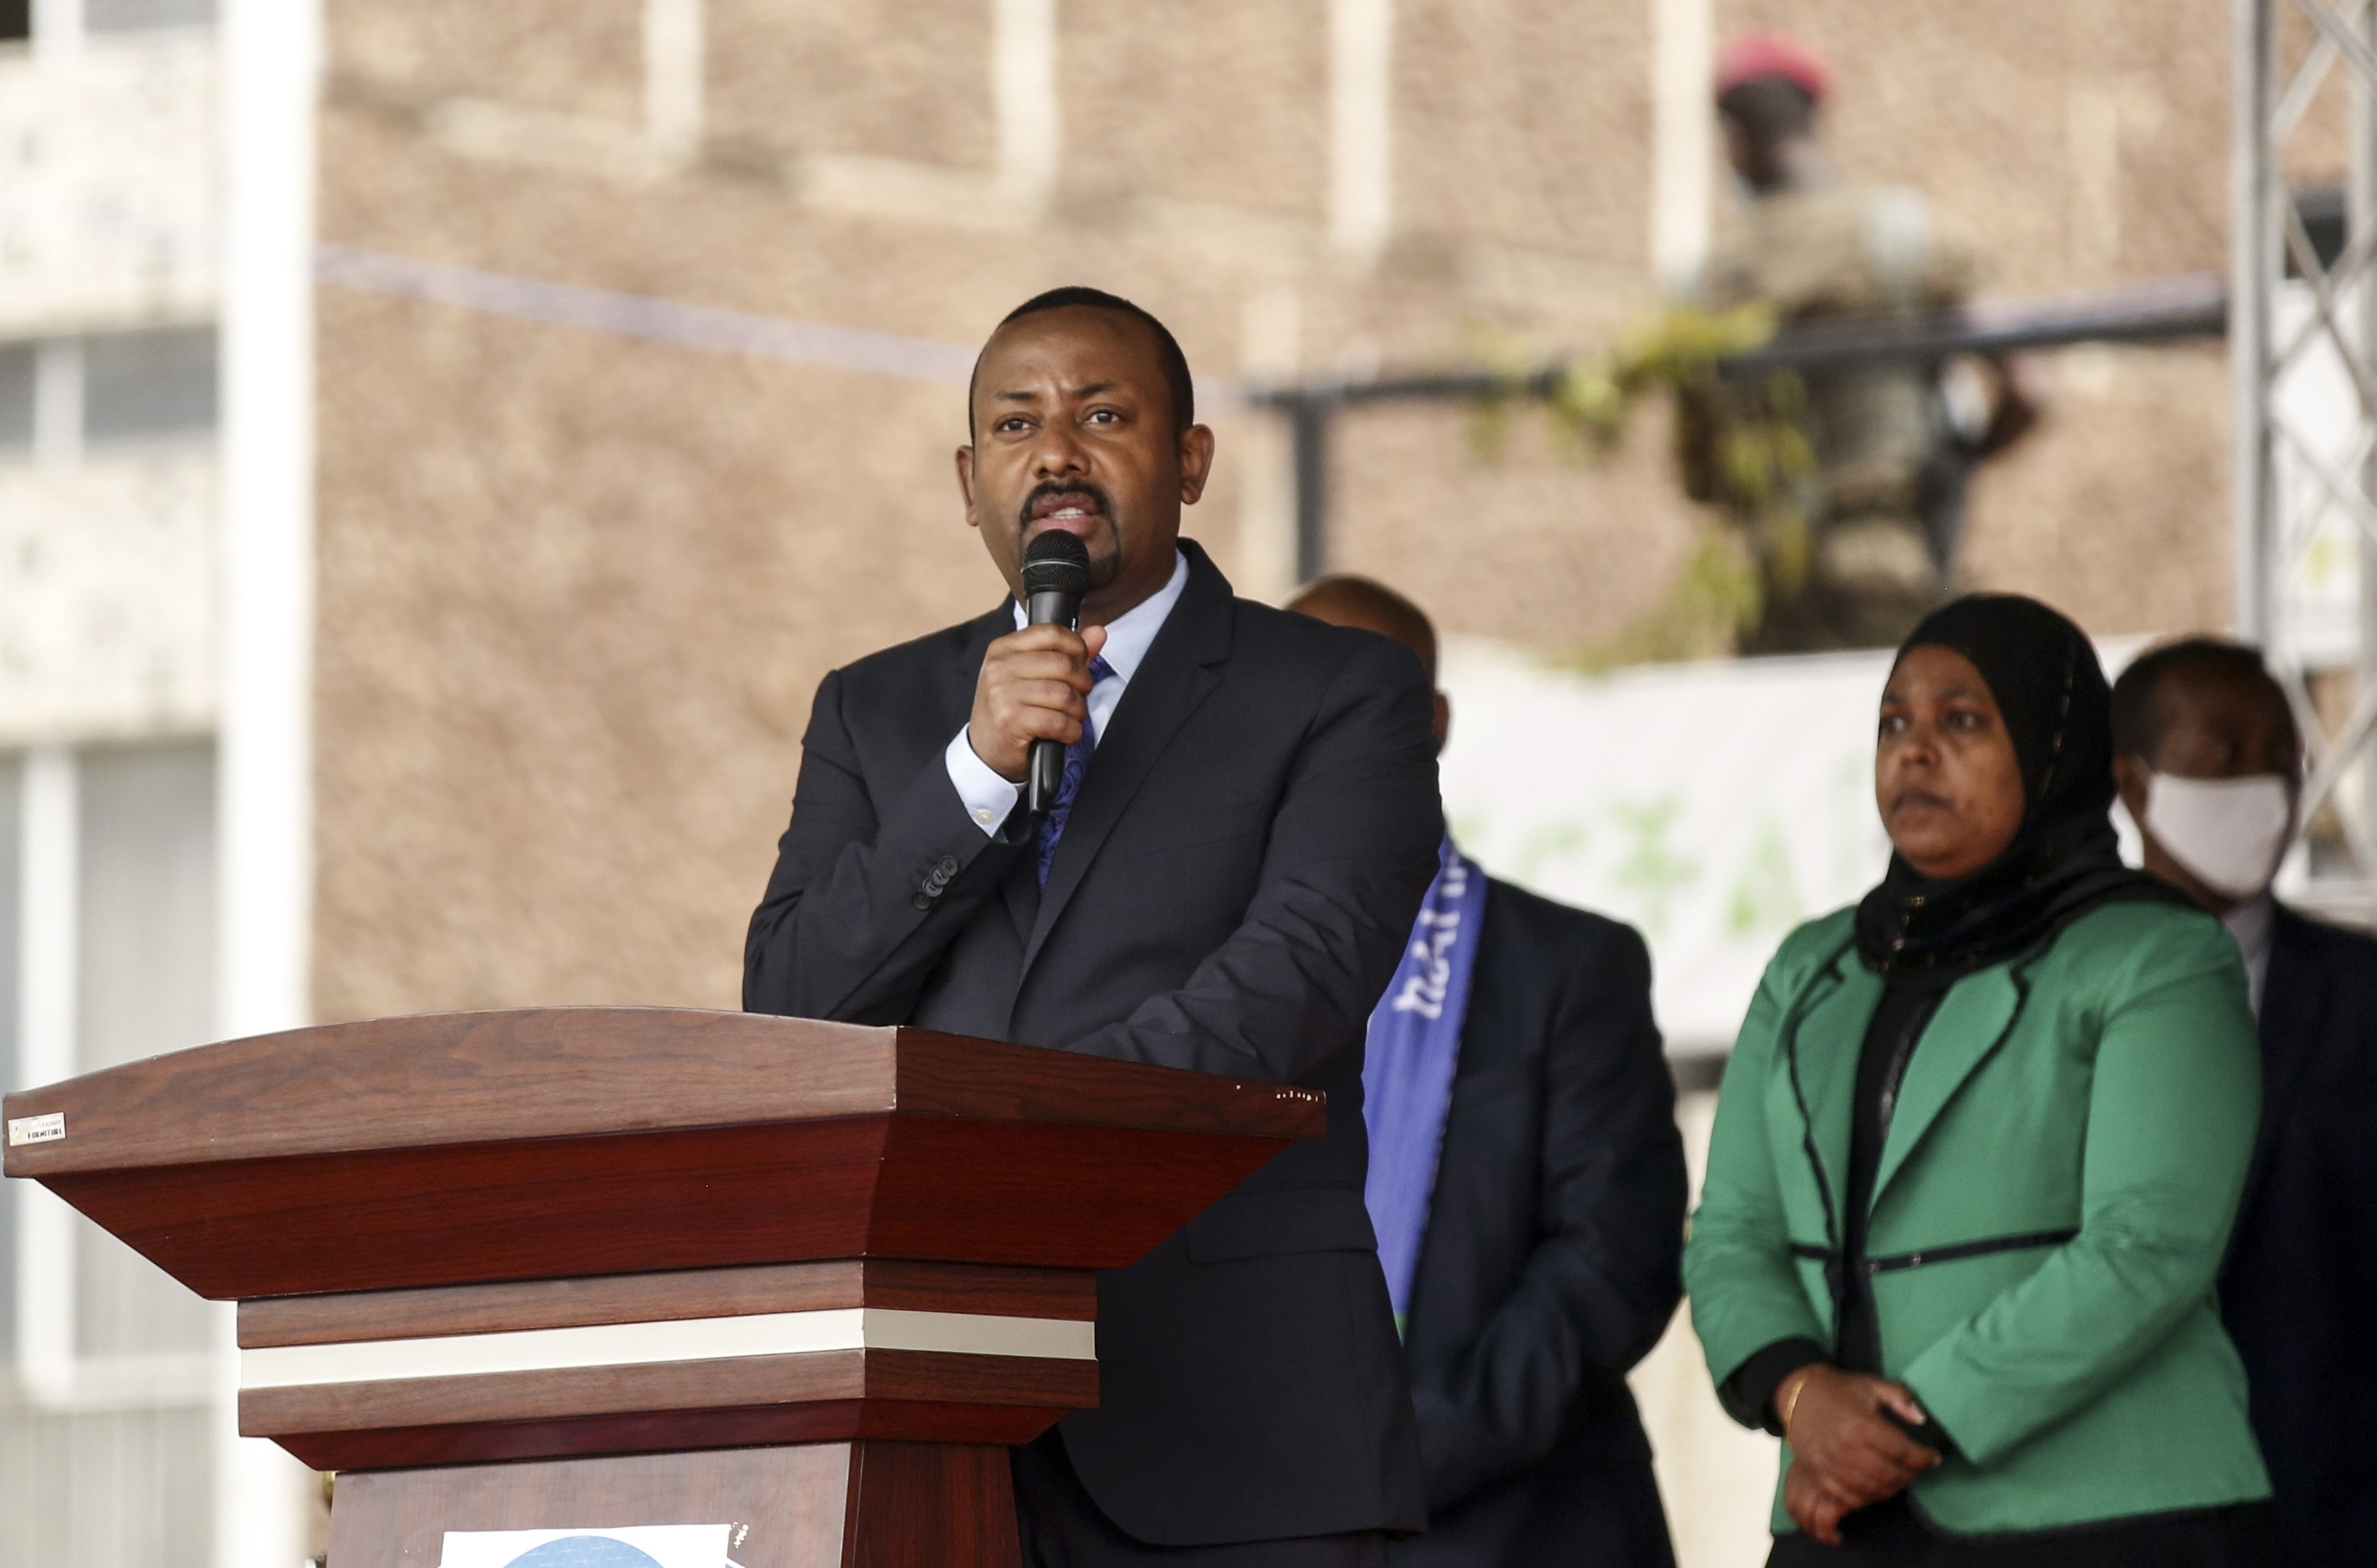 Prime Minister Abiy Ahmed addresses a crowd from a podium.